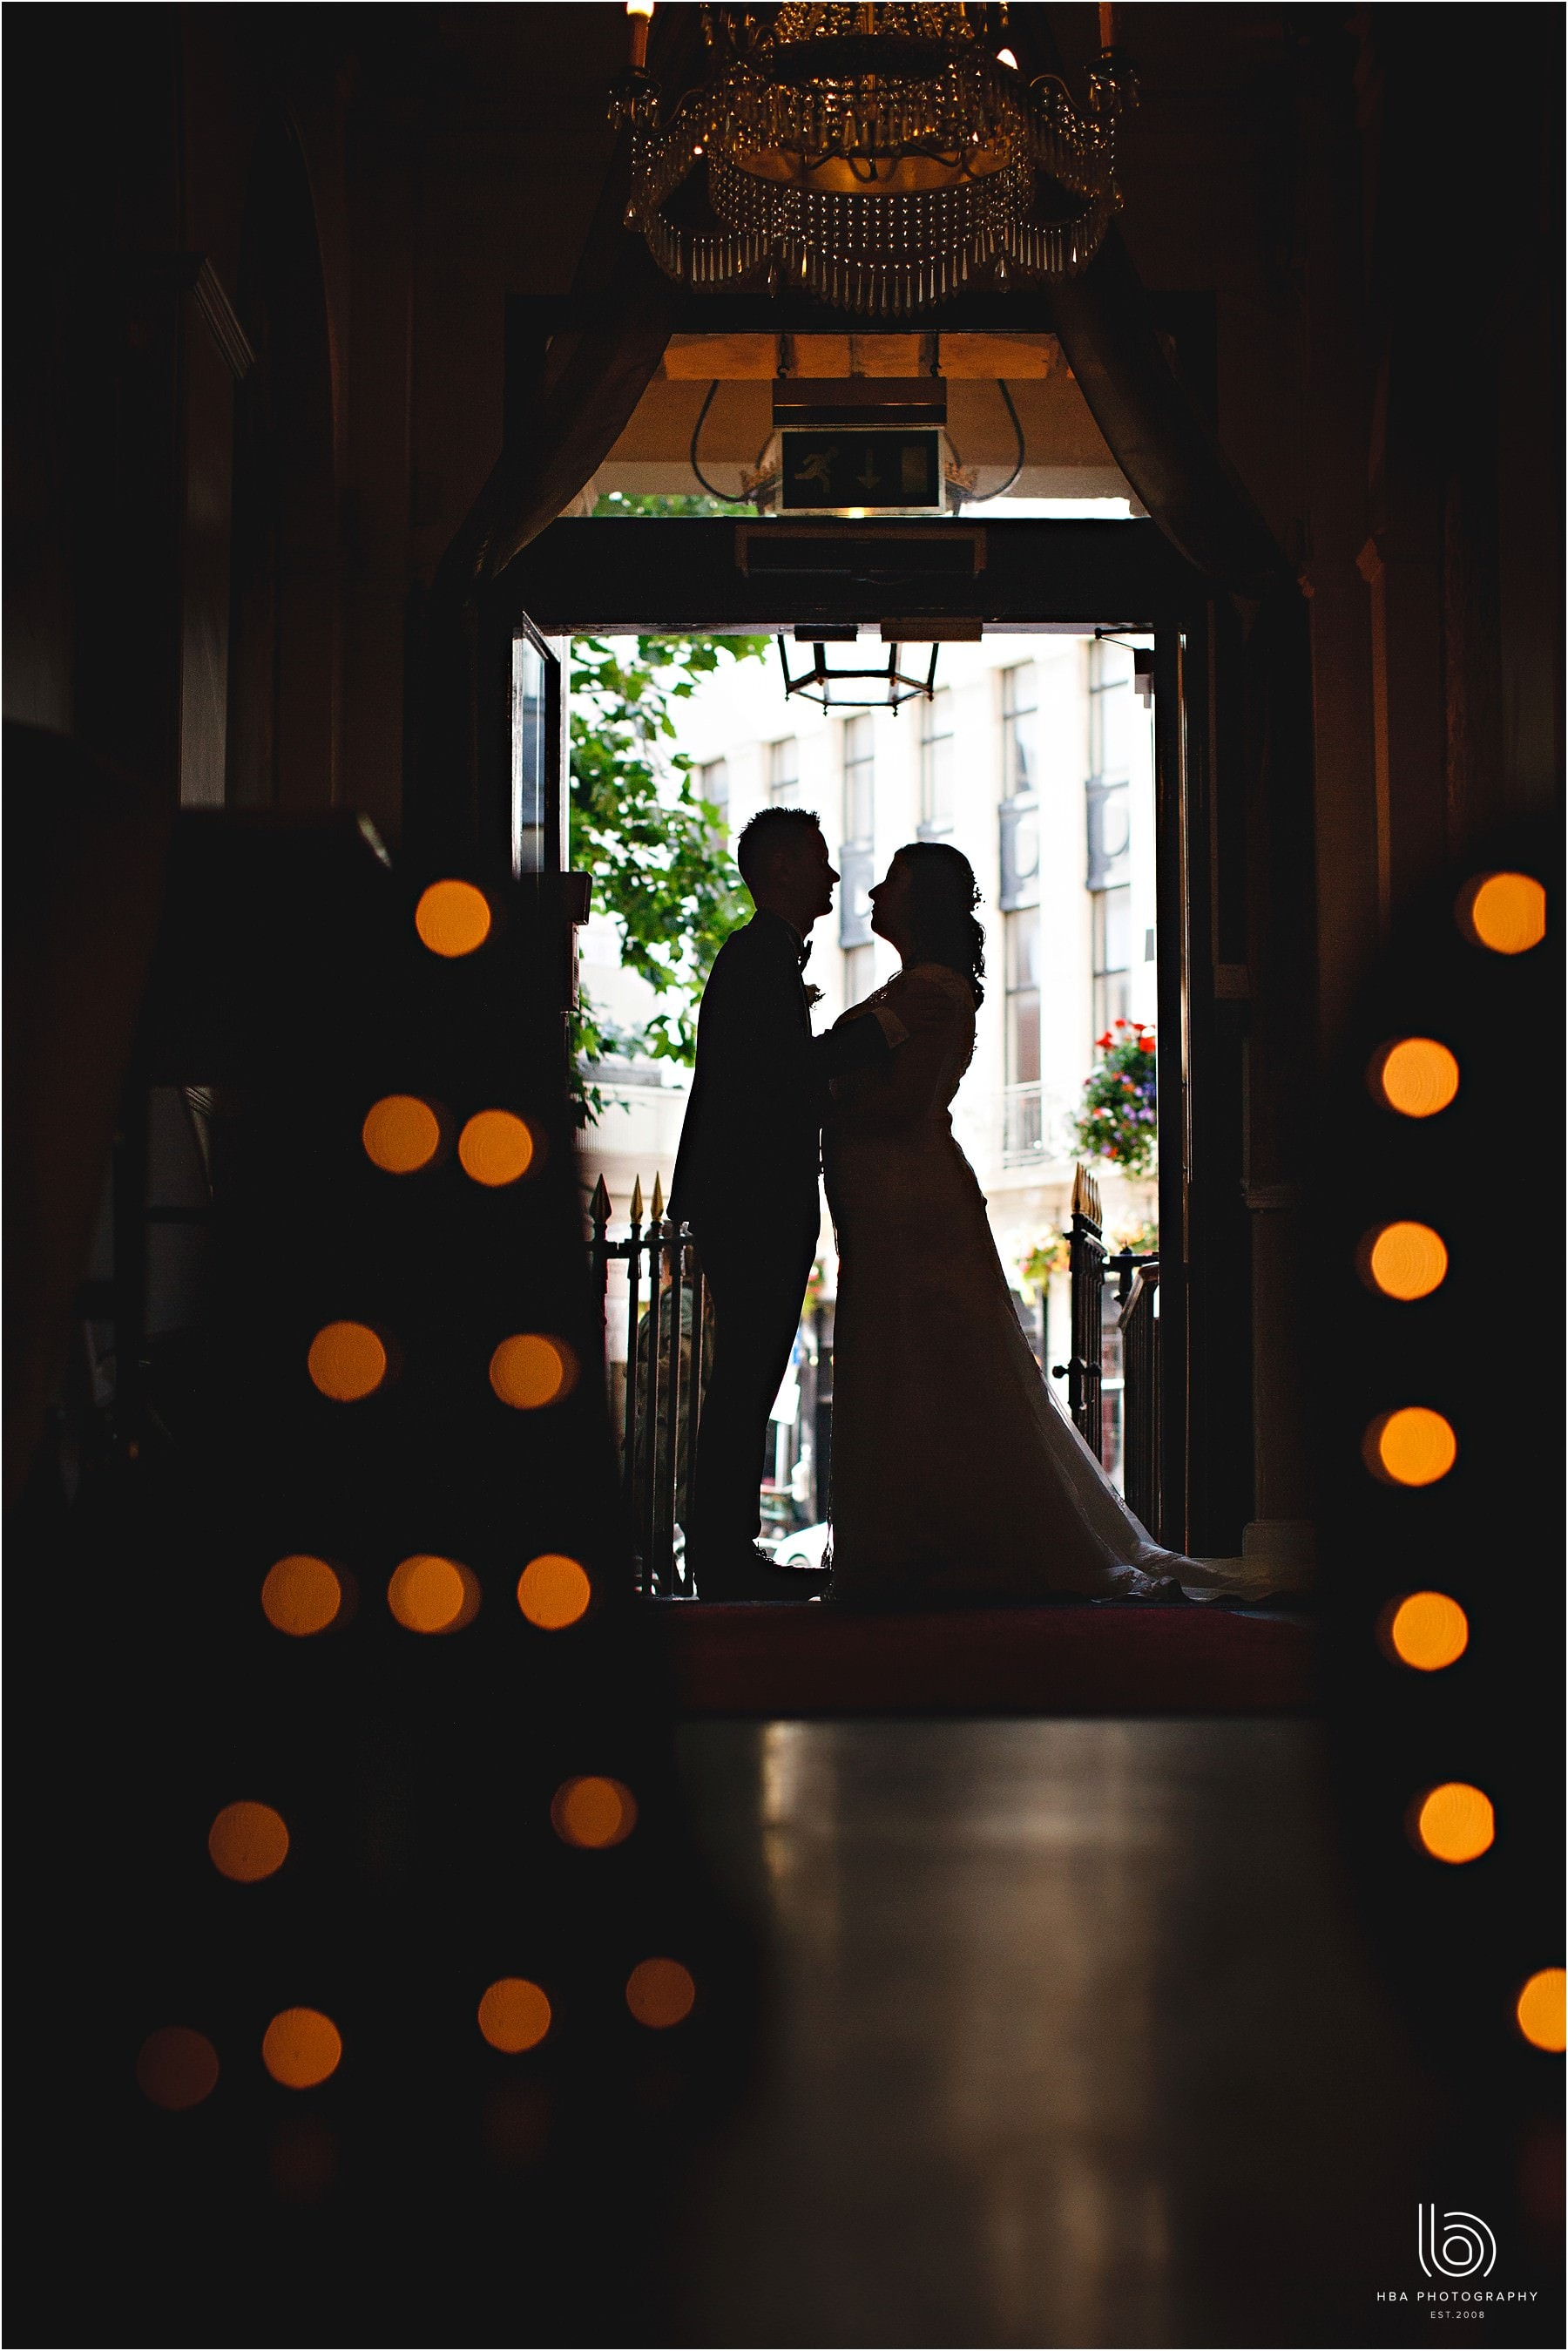 the bride and groom in silhouette